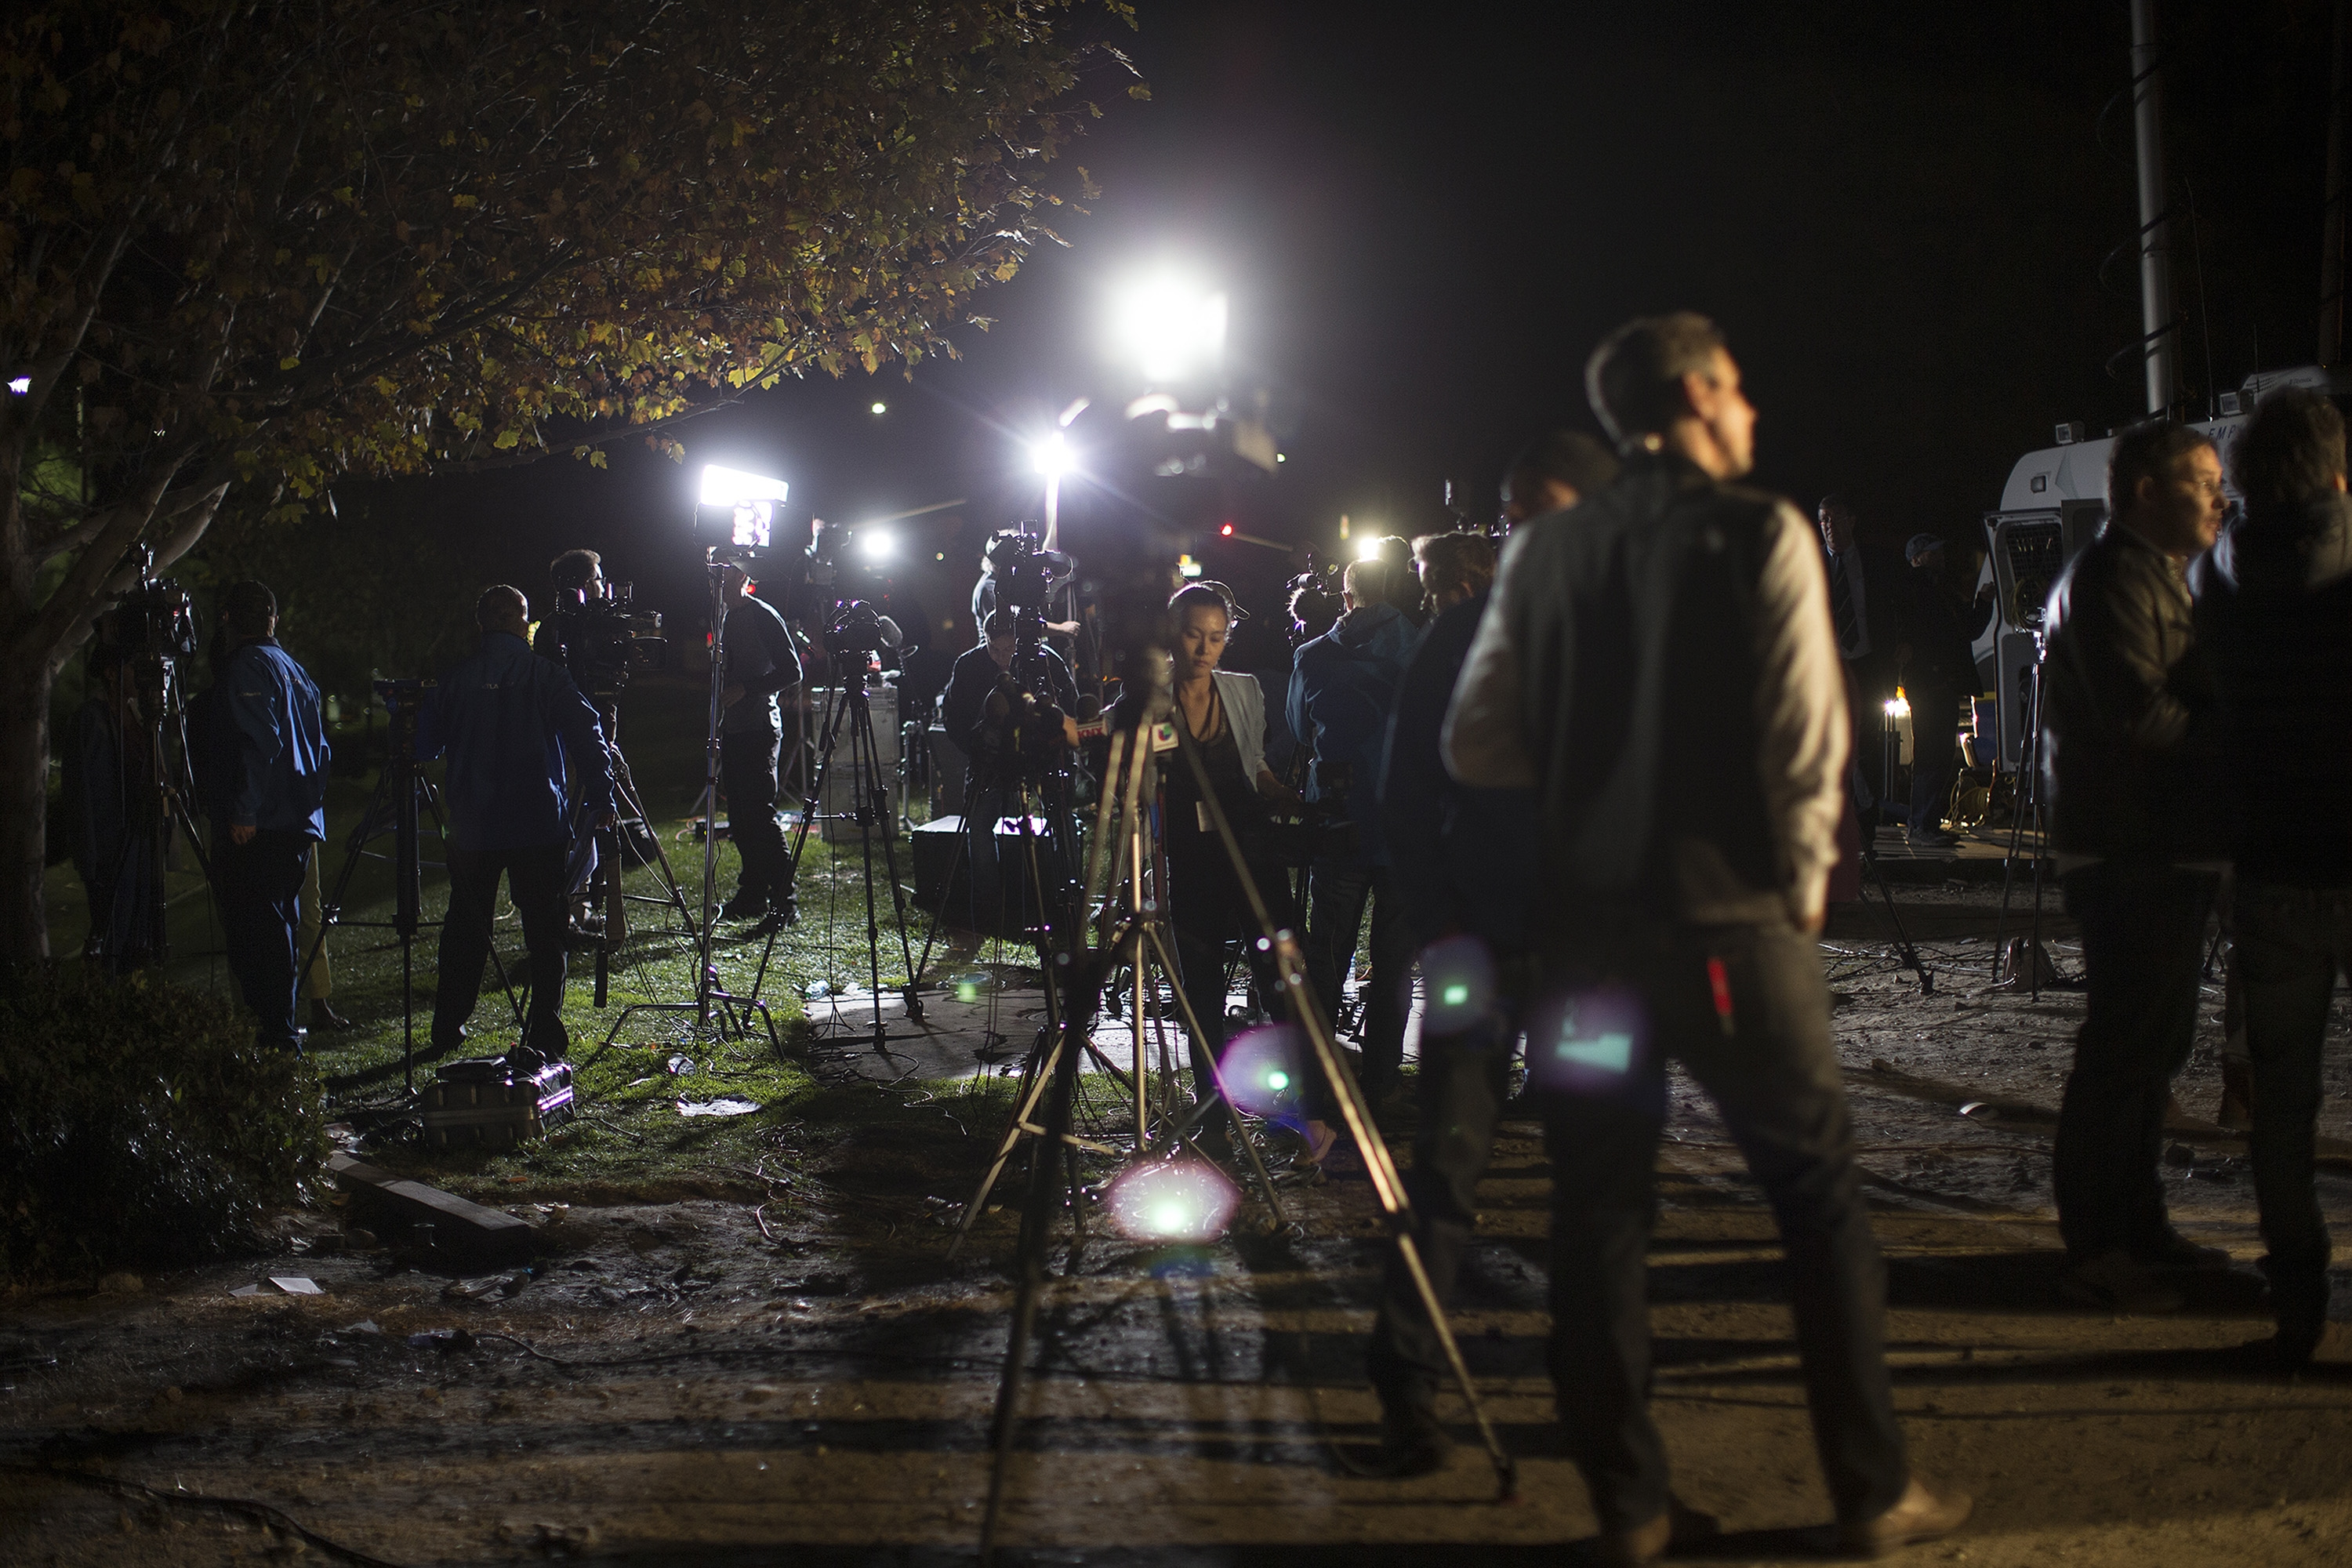 Hundreds of media gather await a news conference half a mile from the mass shooting scene where 14 people were killed at the Inland Regional Center on Wednesday in San Bernardino, Calif.